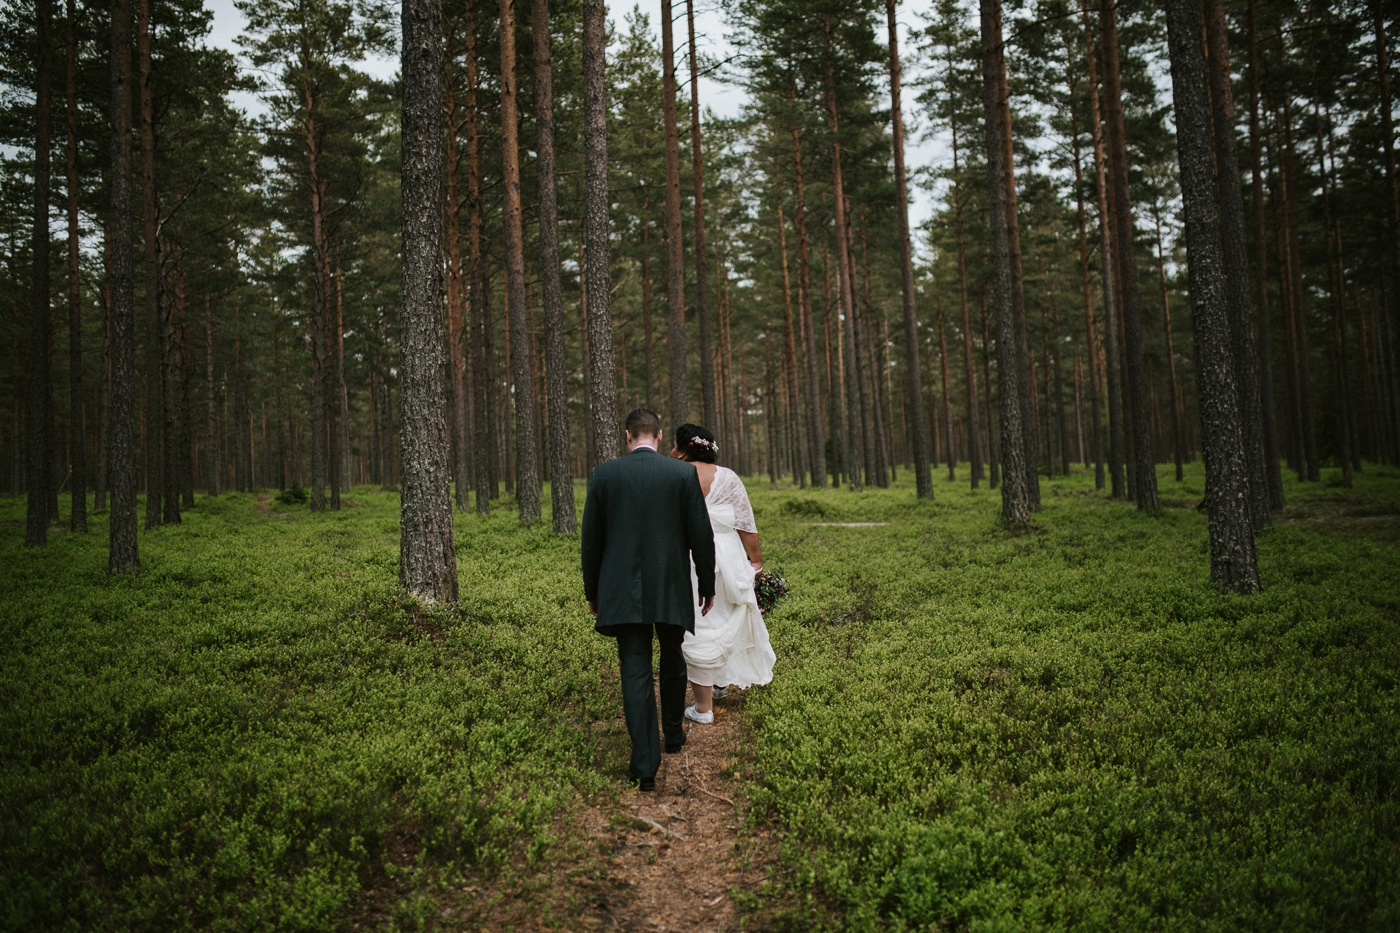 Torbjorn&Paula_Swedish-countryside-rustic-relaxed-wedding_Melbourne-Wedding-Photography_67